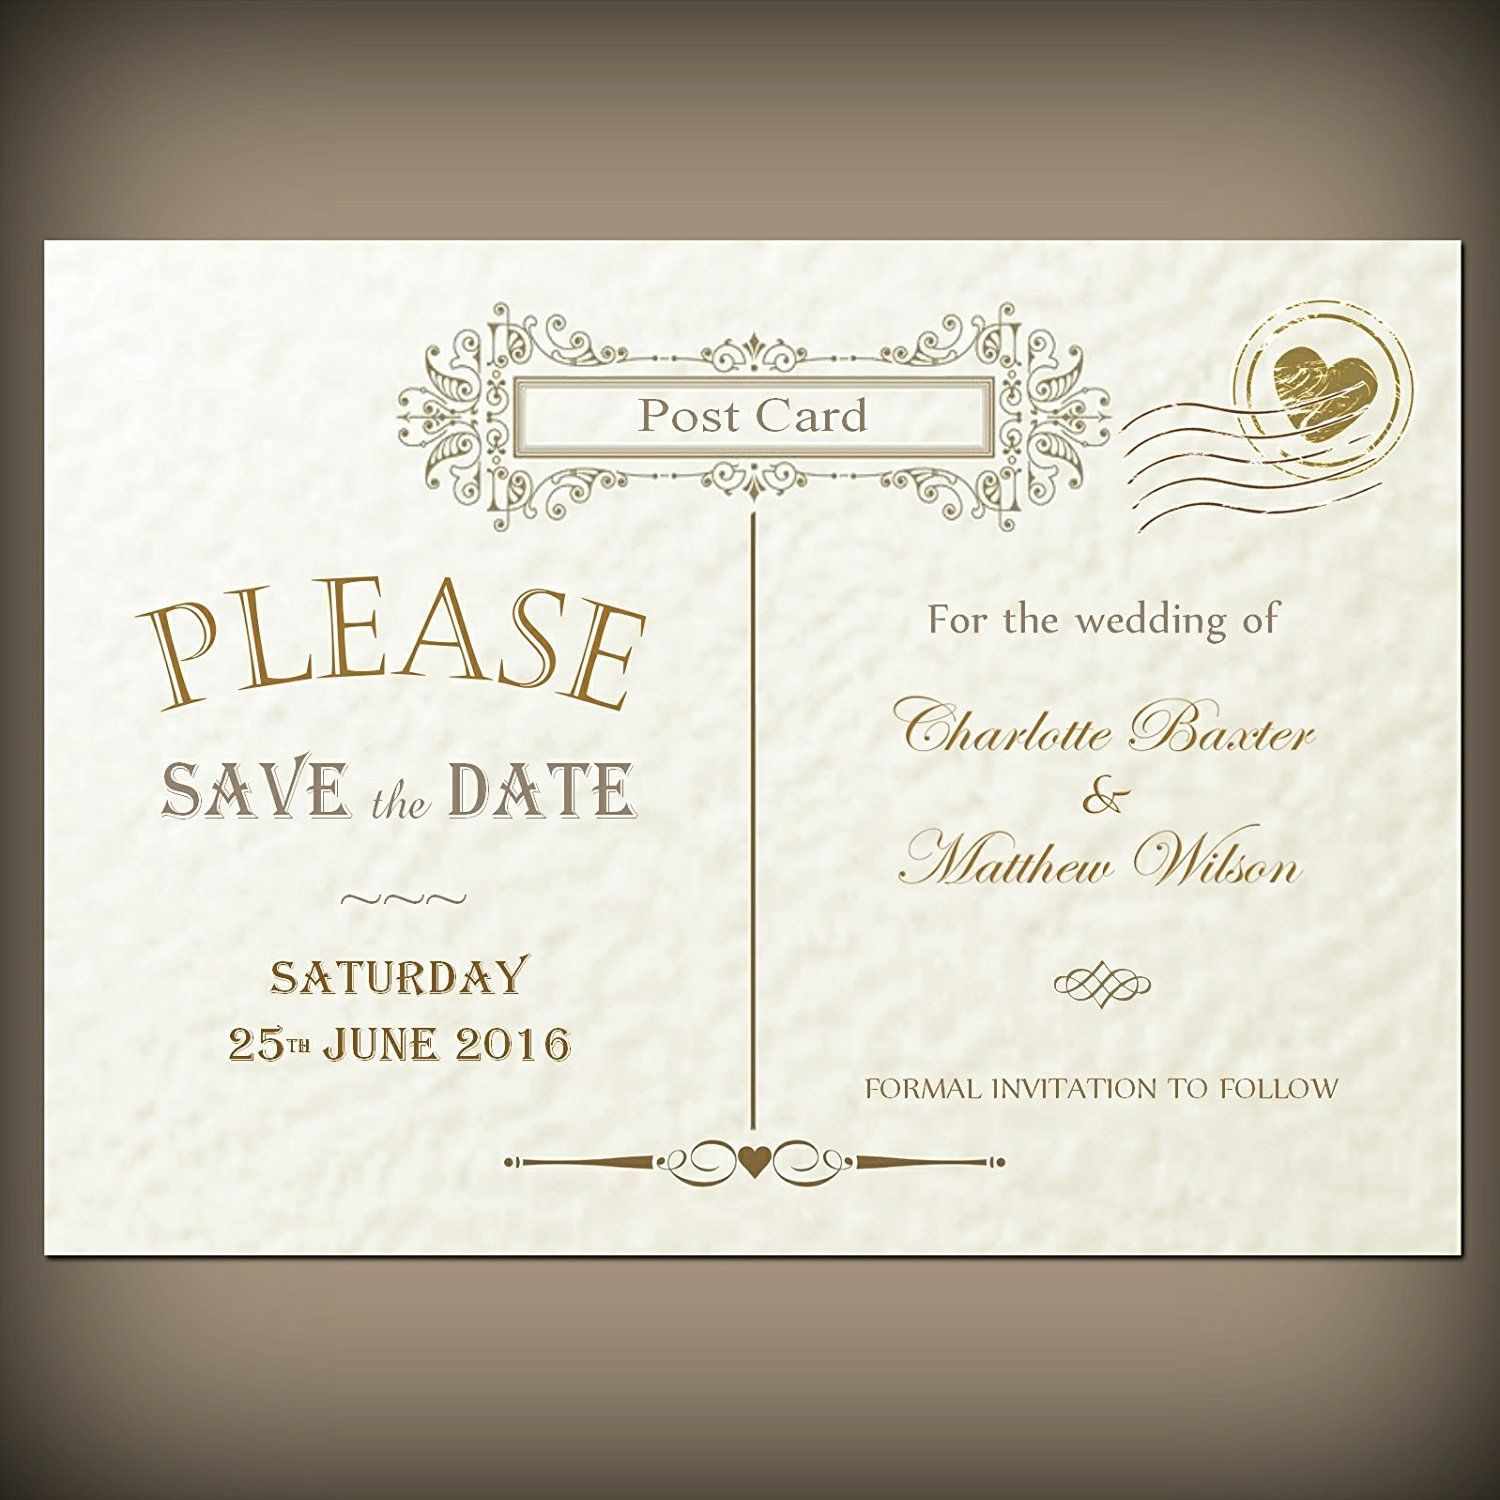 50 personalised save the date cards envelopes victorian vintage 50 personalised save the date cards envelopes victorian vintage post card design ivory monicamarmolfo Choice Image